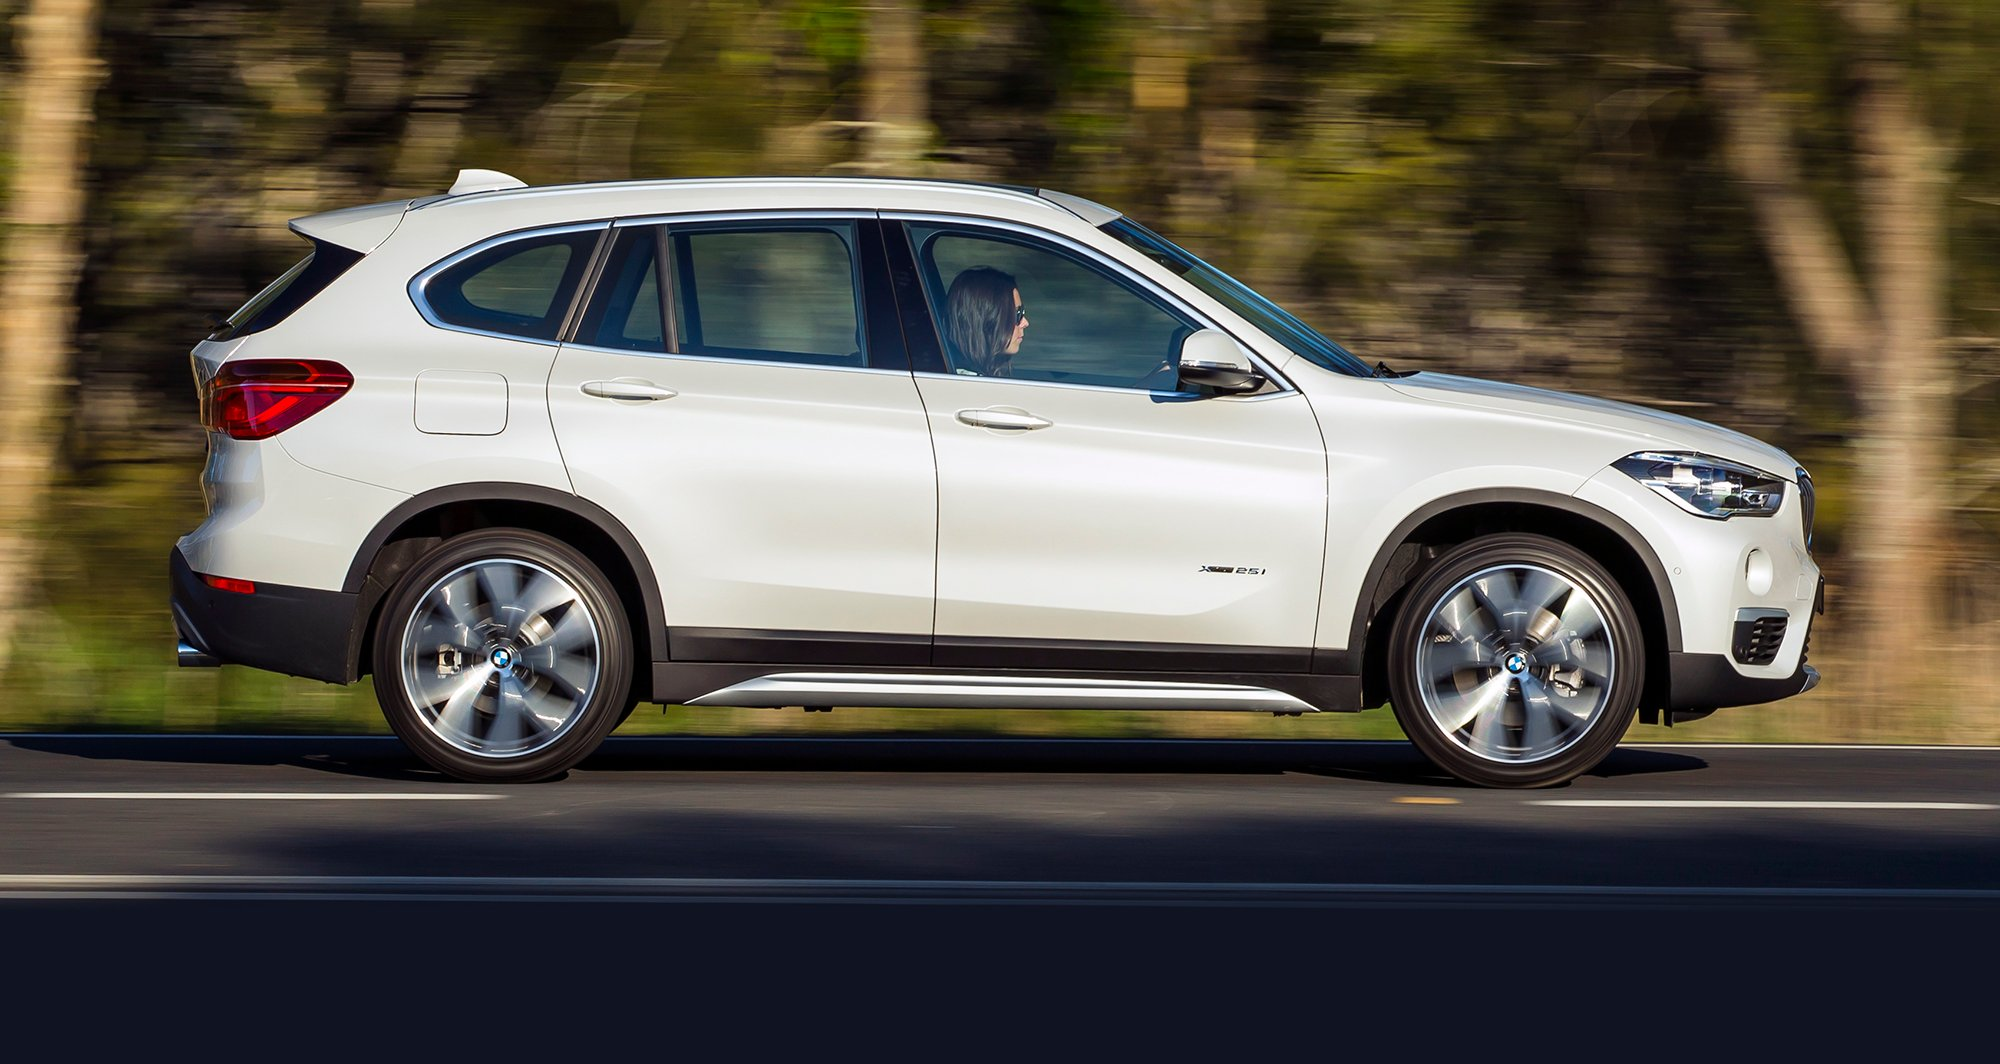 Bmw X Drive >> 2016 BMW X1 Review - photos | CarAdvice